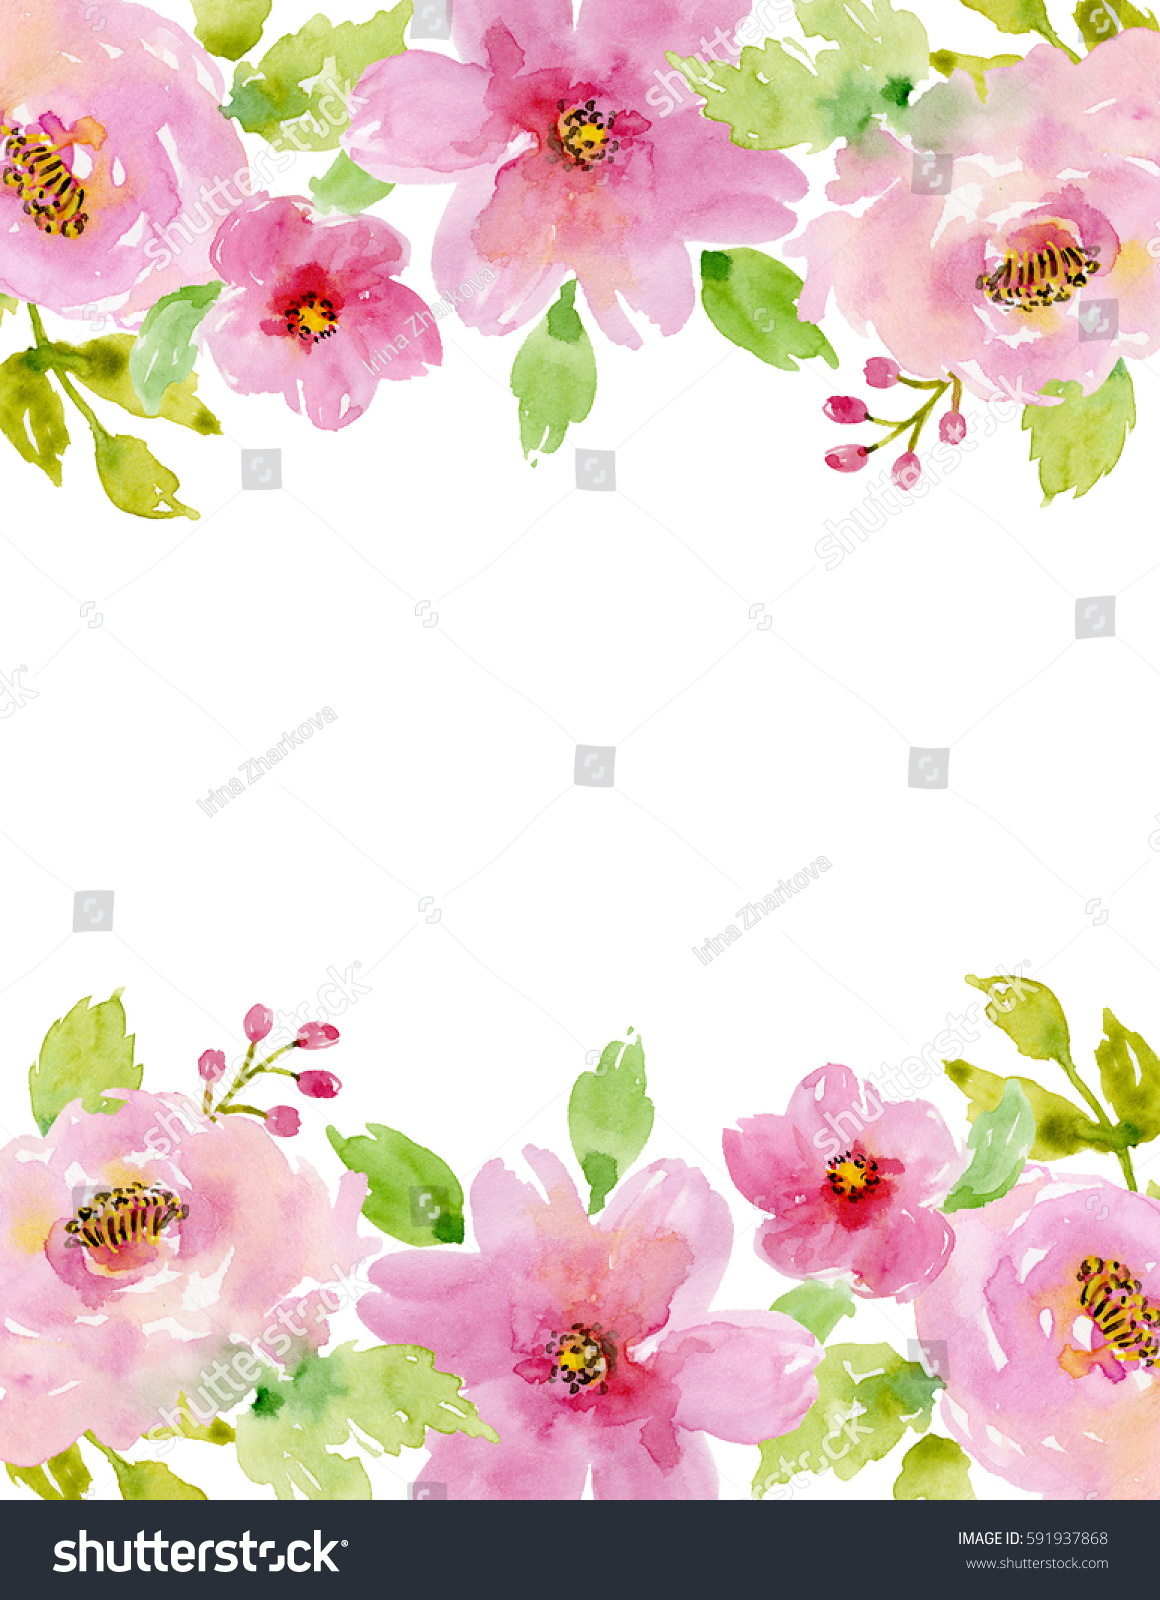 Painted watercolor composition flowers frame border stock painted watercolor composition of flowers frame border background greeting card valentines kristyandbryce Image collections